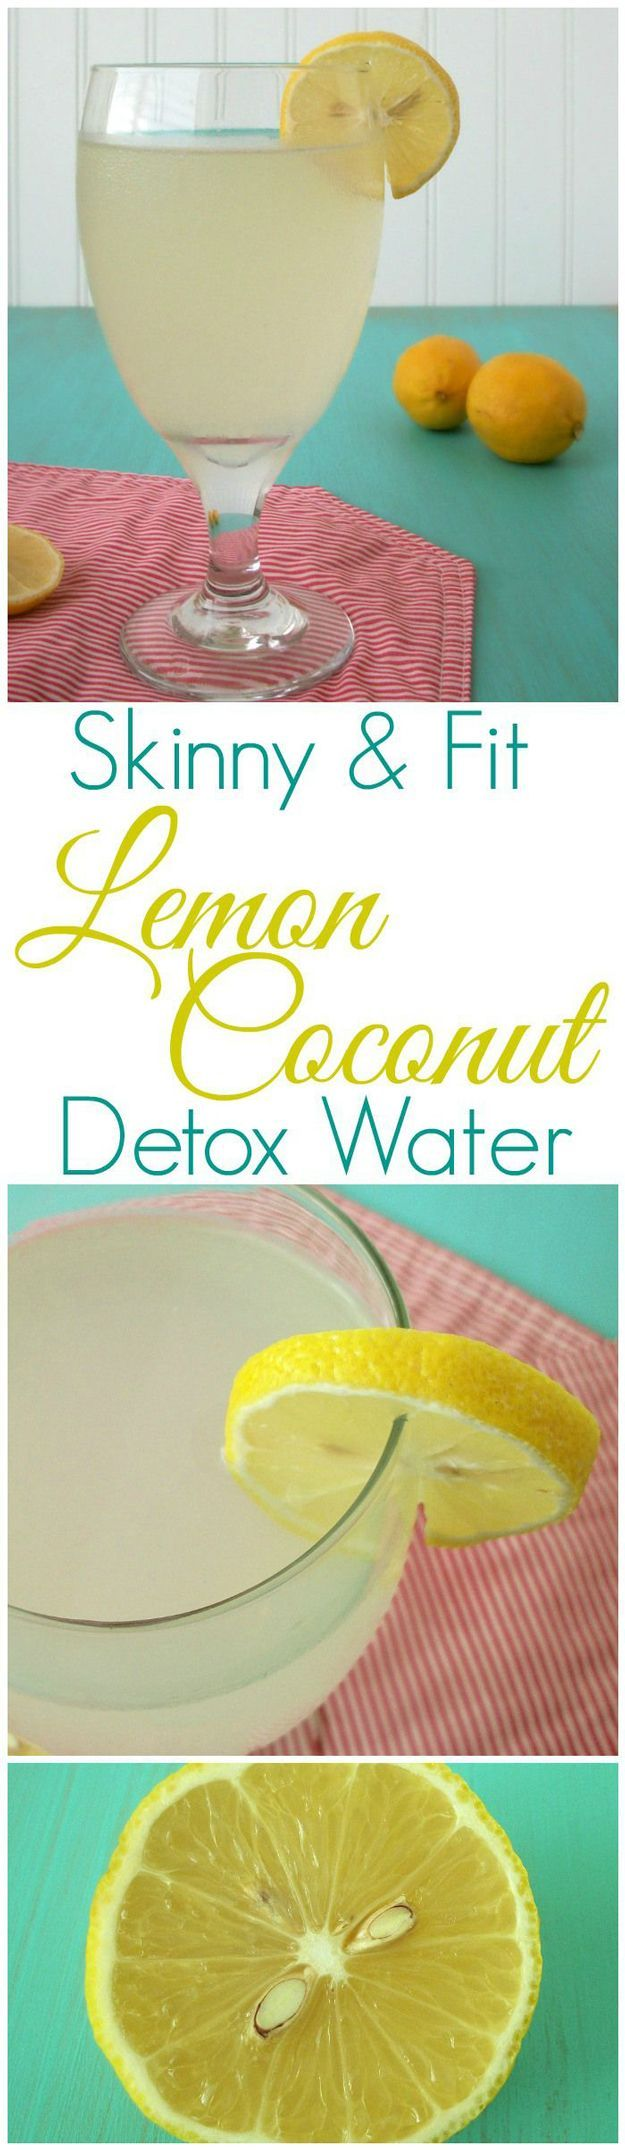 Drink your way skinny! Lemon Coconut Detox Water Recipe | Skinny Detox Water for Metabolism by DIY Ready at  http://diyready.com/diy-recipes-detox-waters/